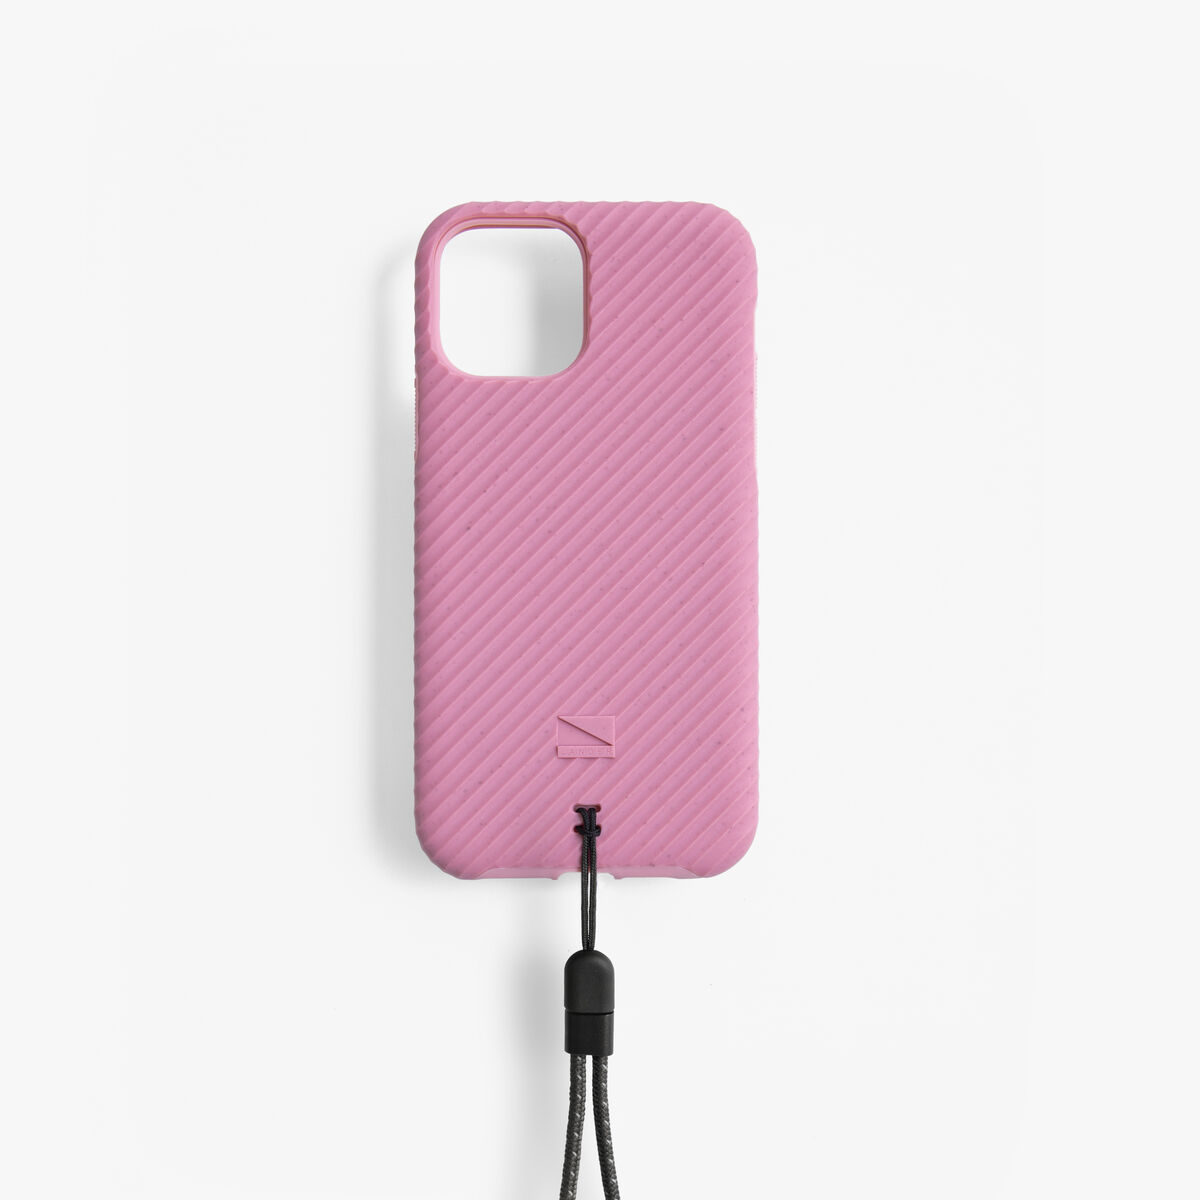 Vise Case (Blush) for Apple iPhone 12 Pro / iPhone 12,, large